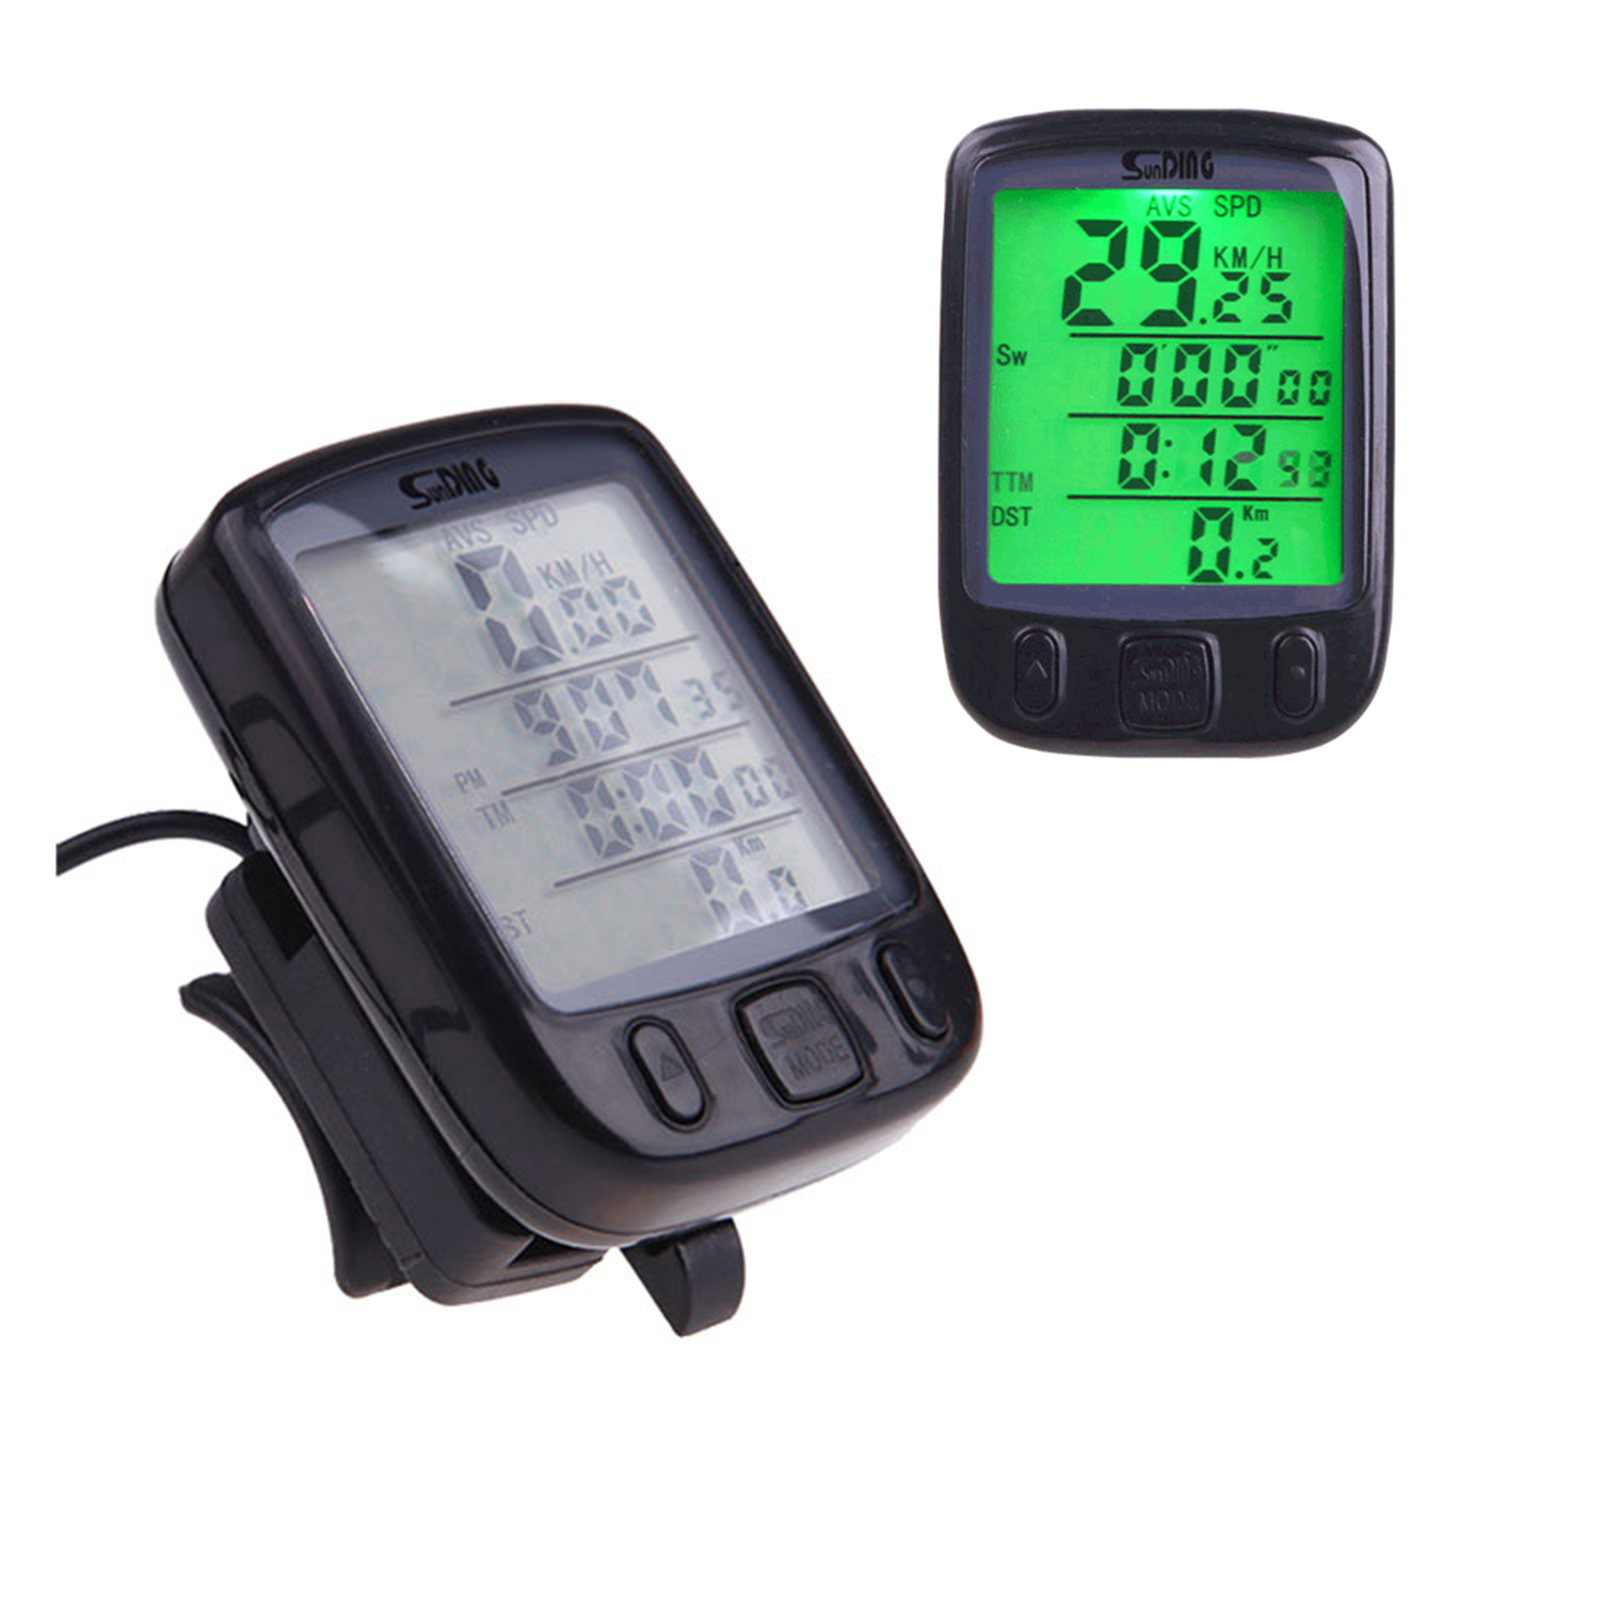 Bicycle Speedometer and Odometer Wired Waterproof Cycle  Bicycle Bike Computer with LCD Display Backlight & Multi-Functions